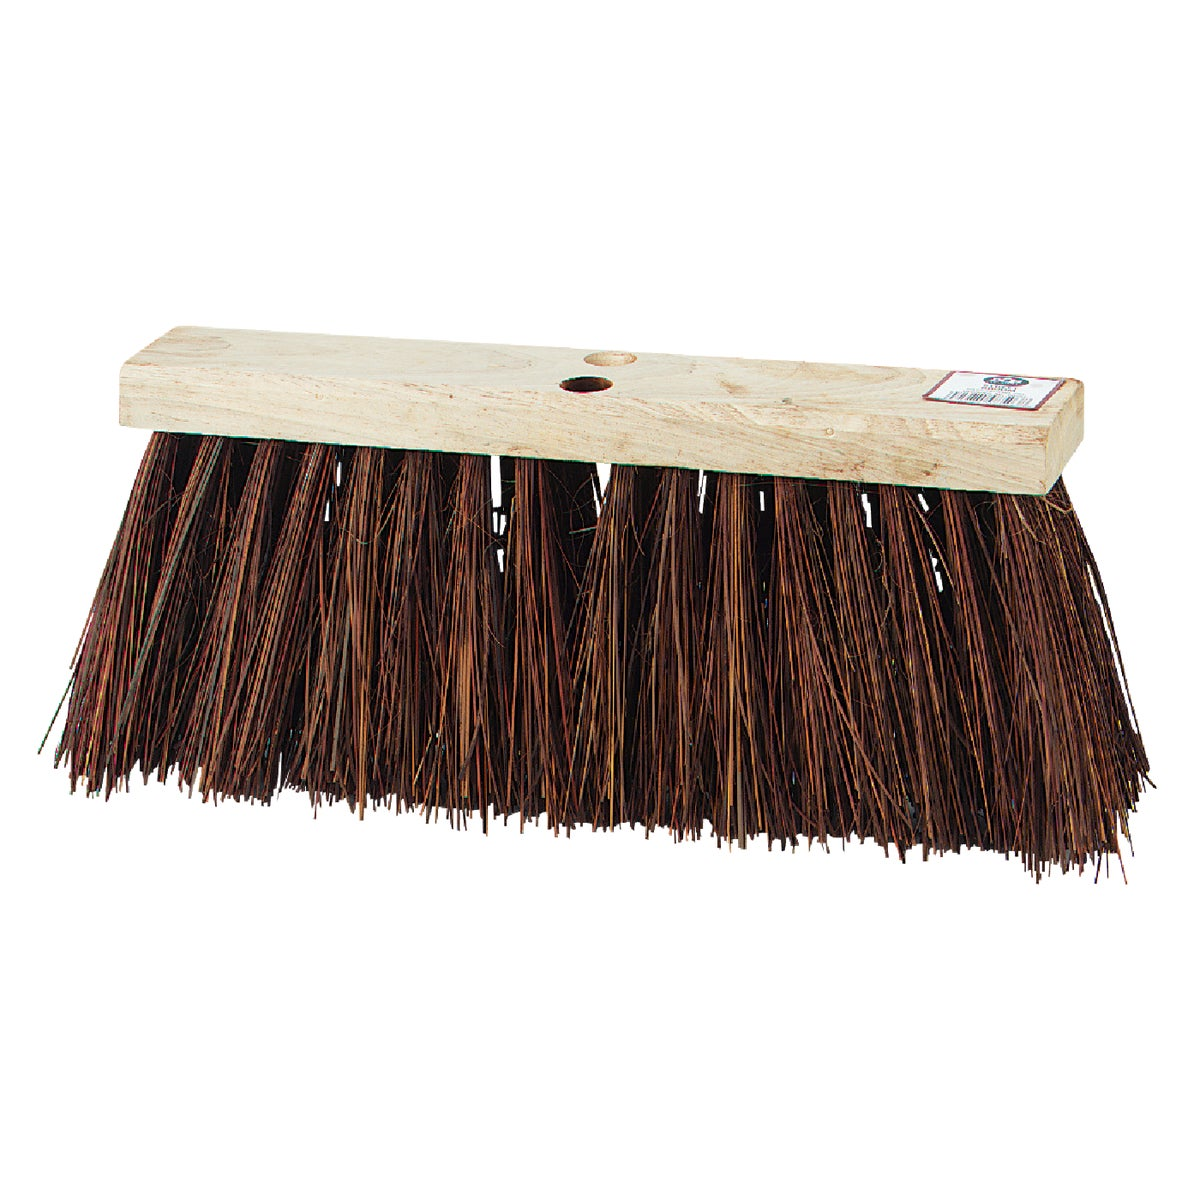 "16"" NATURAL PUSH BROOM"